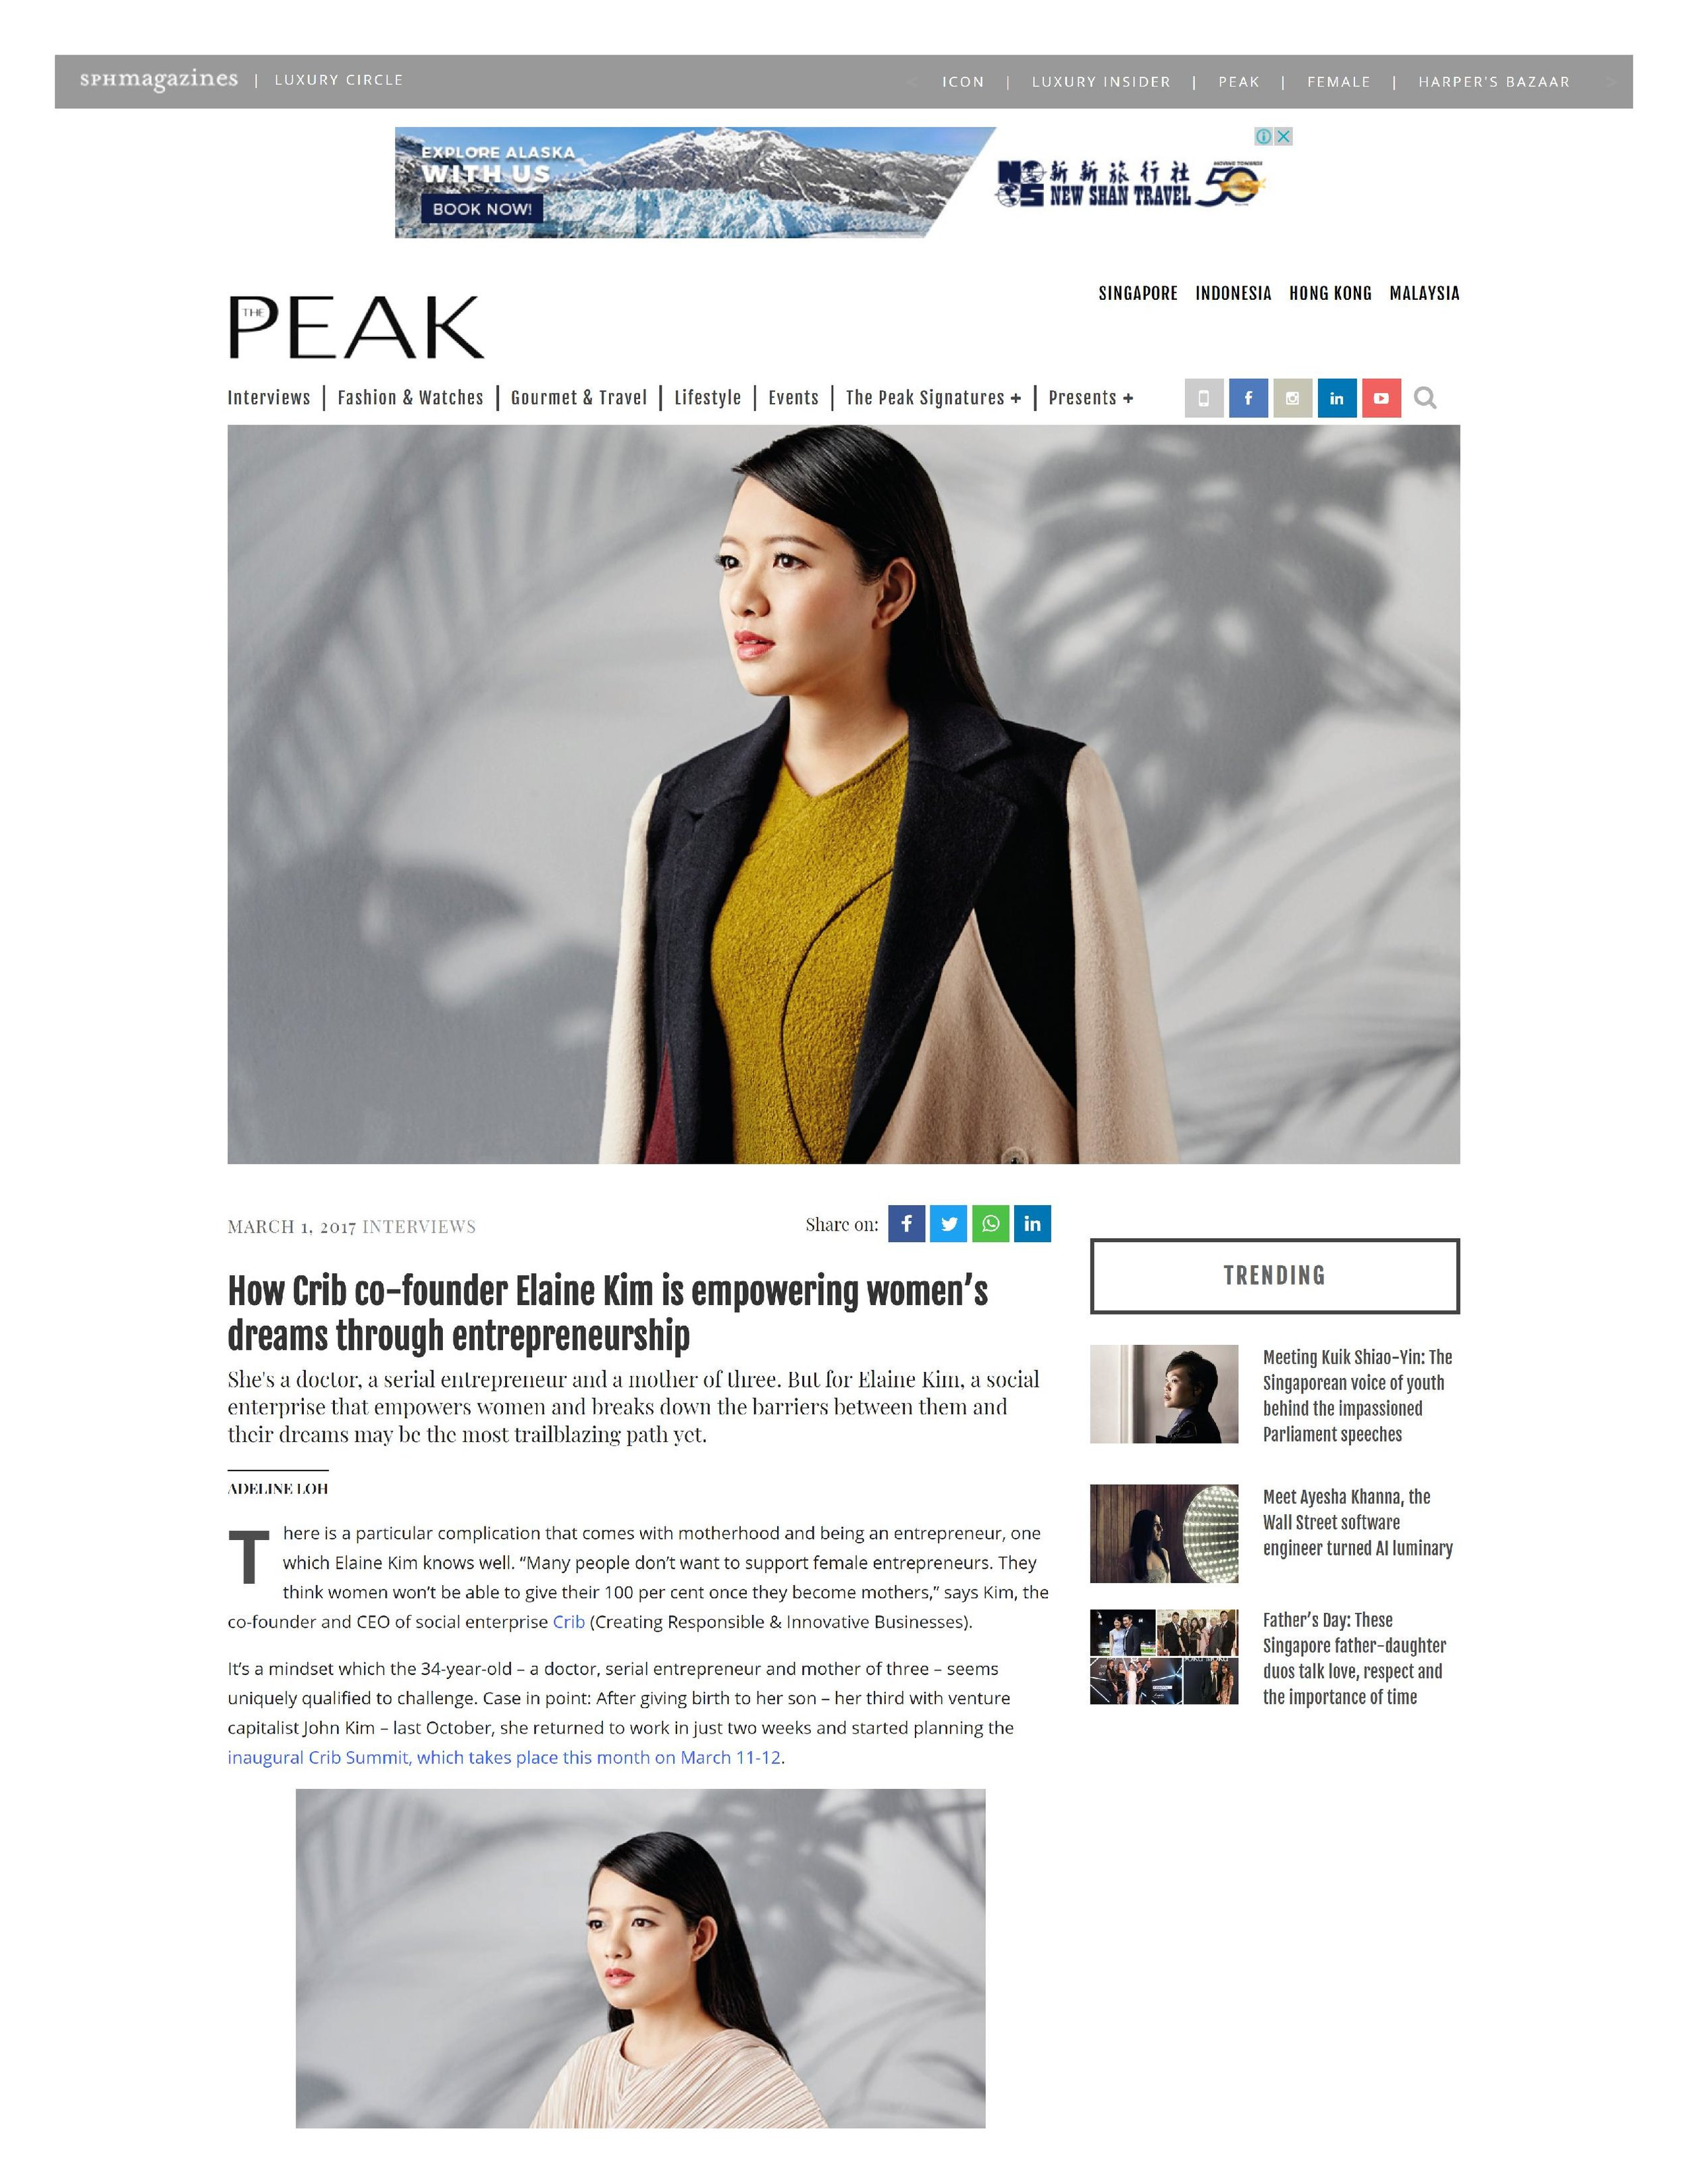 screencapture-thepeakmagazine-sg-interviews-crib-co-founder-elaine-kim-empowering-womens-dreams-entrepreneurship-2018-09-13-19_32_12-page-001.jpg